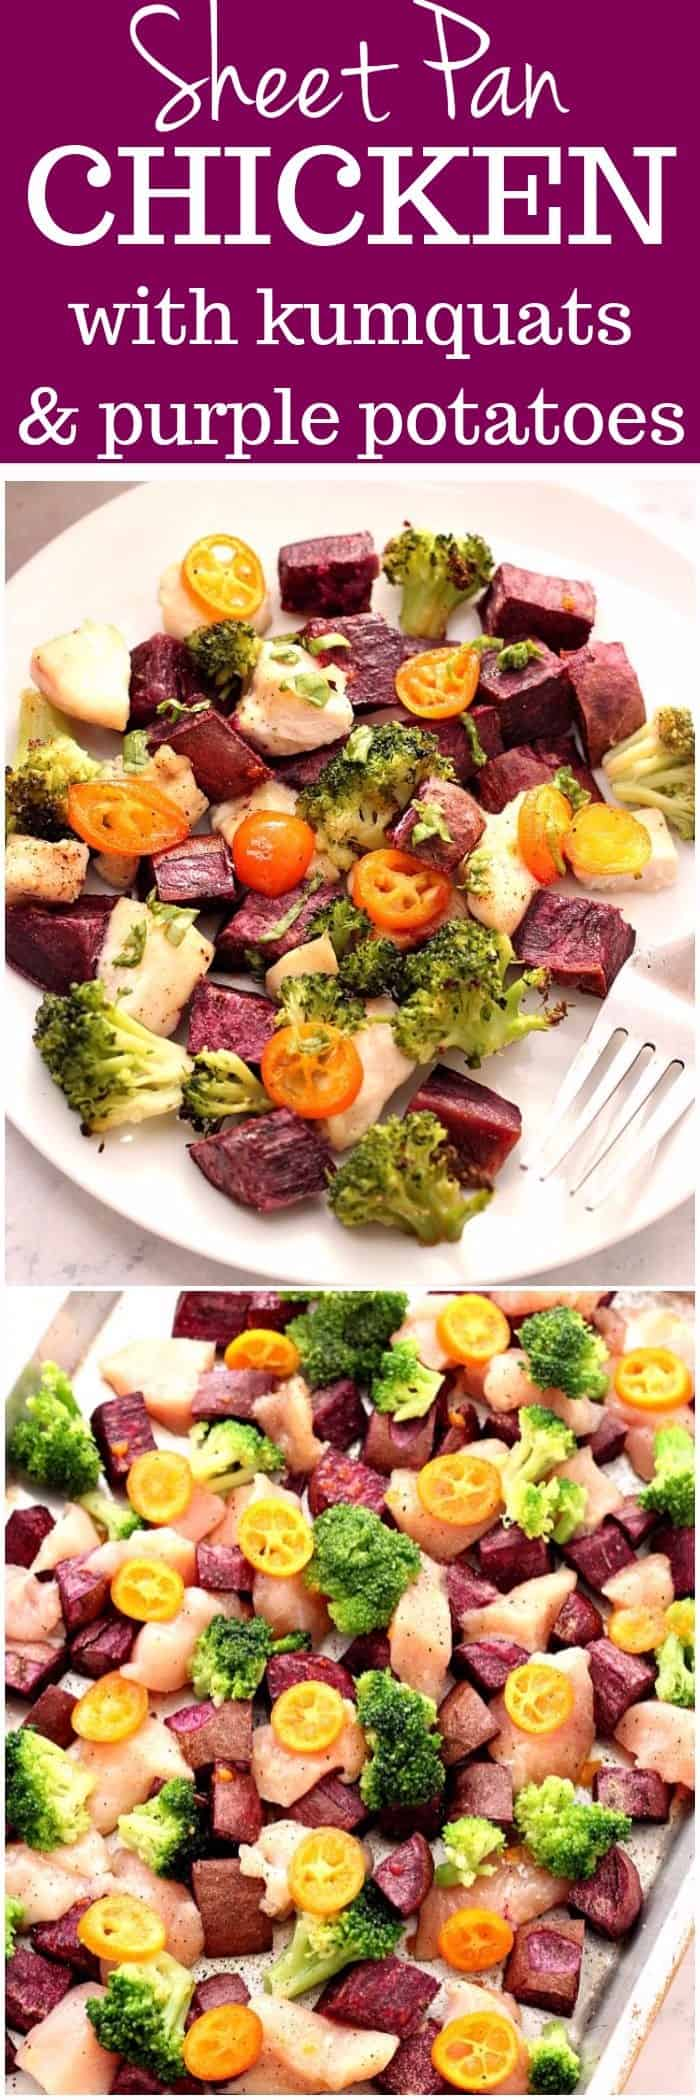 sheet pan chicken with kumquats and purple potatoes recipe long1 Sheet Pan Chicken with Kumquats and Purple Potatoes